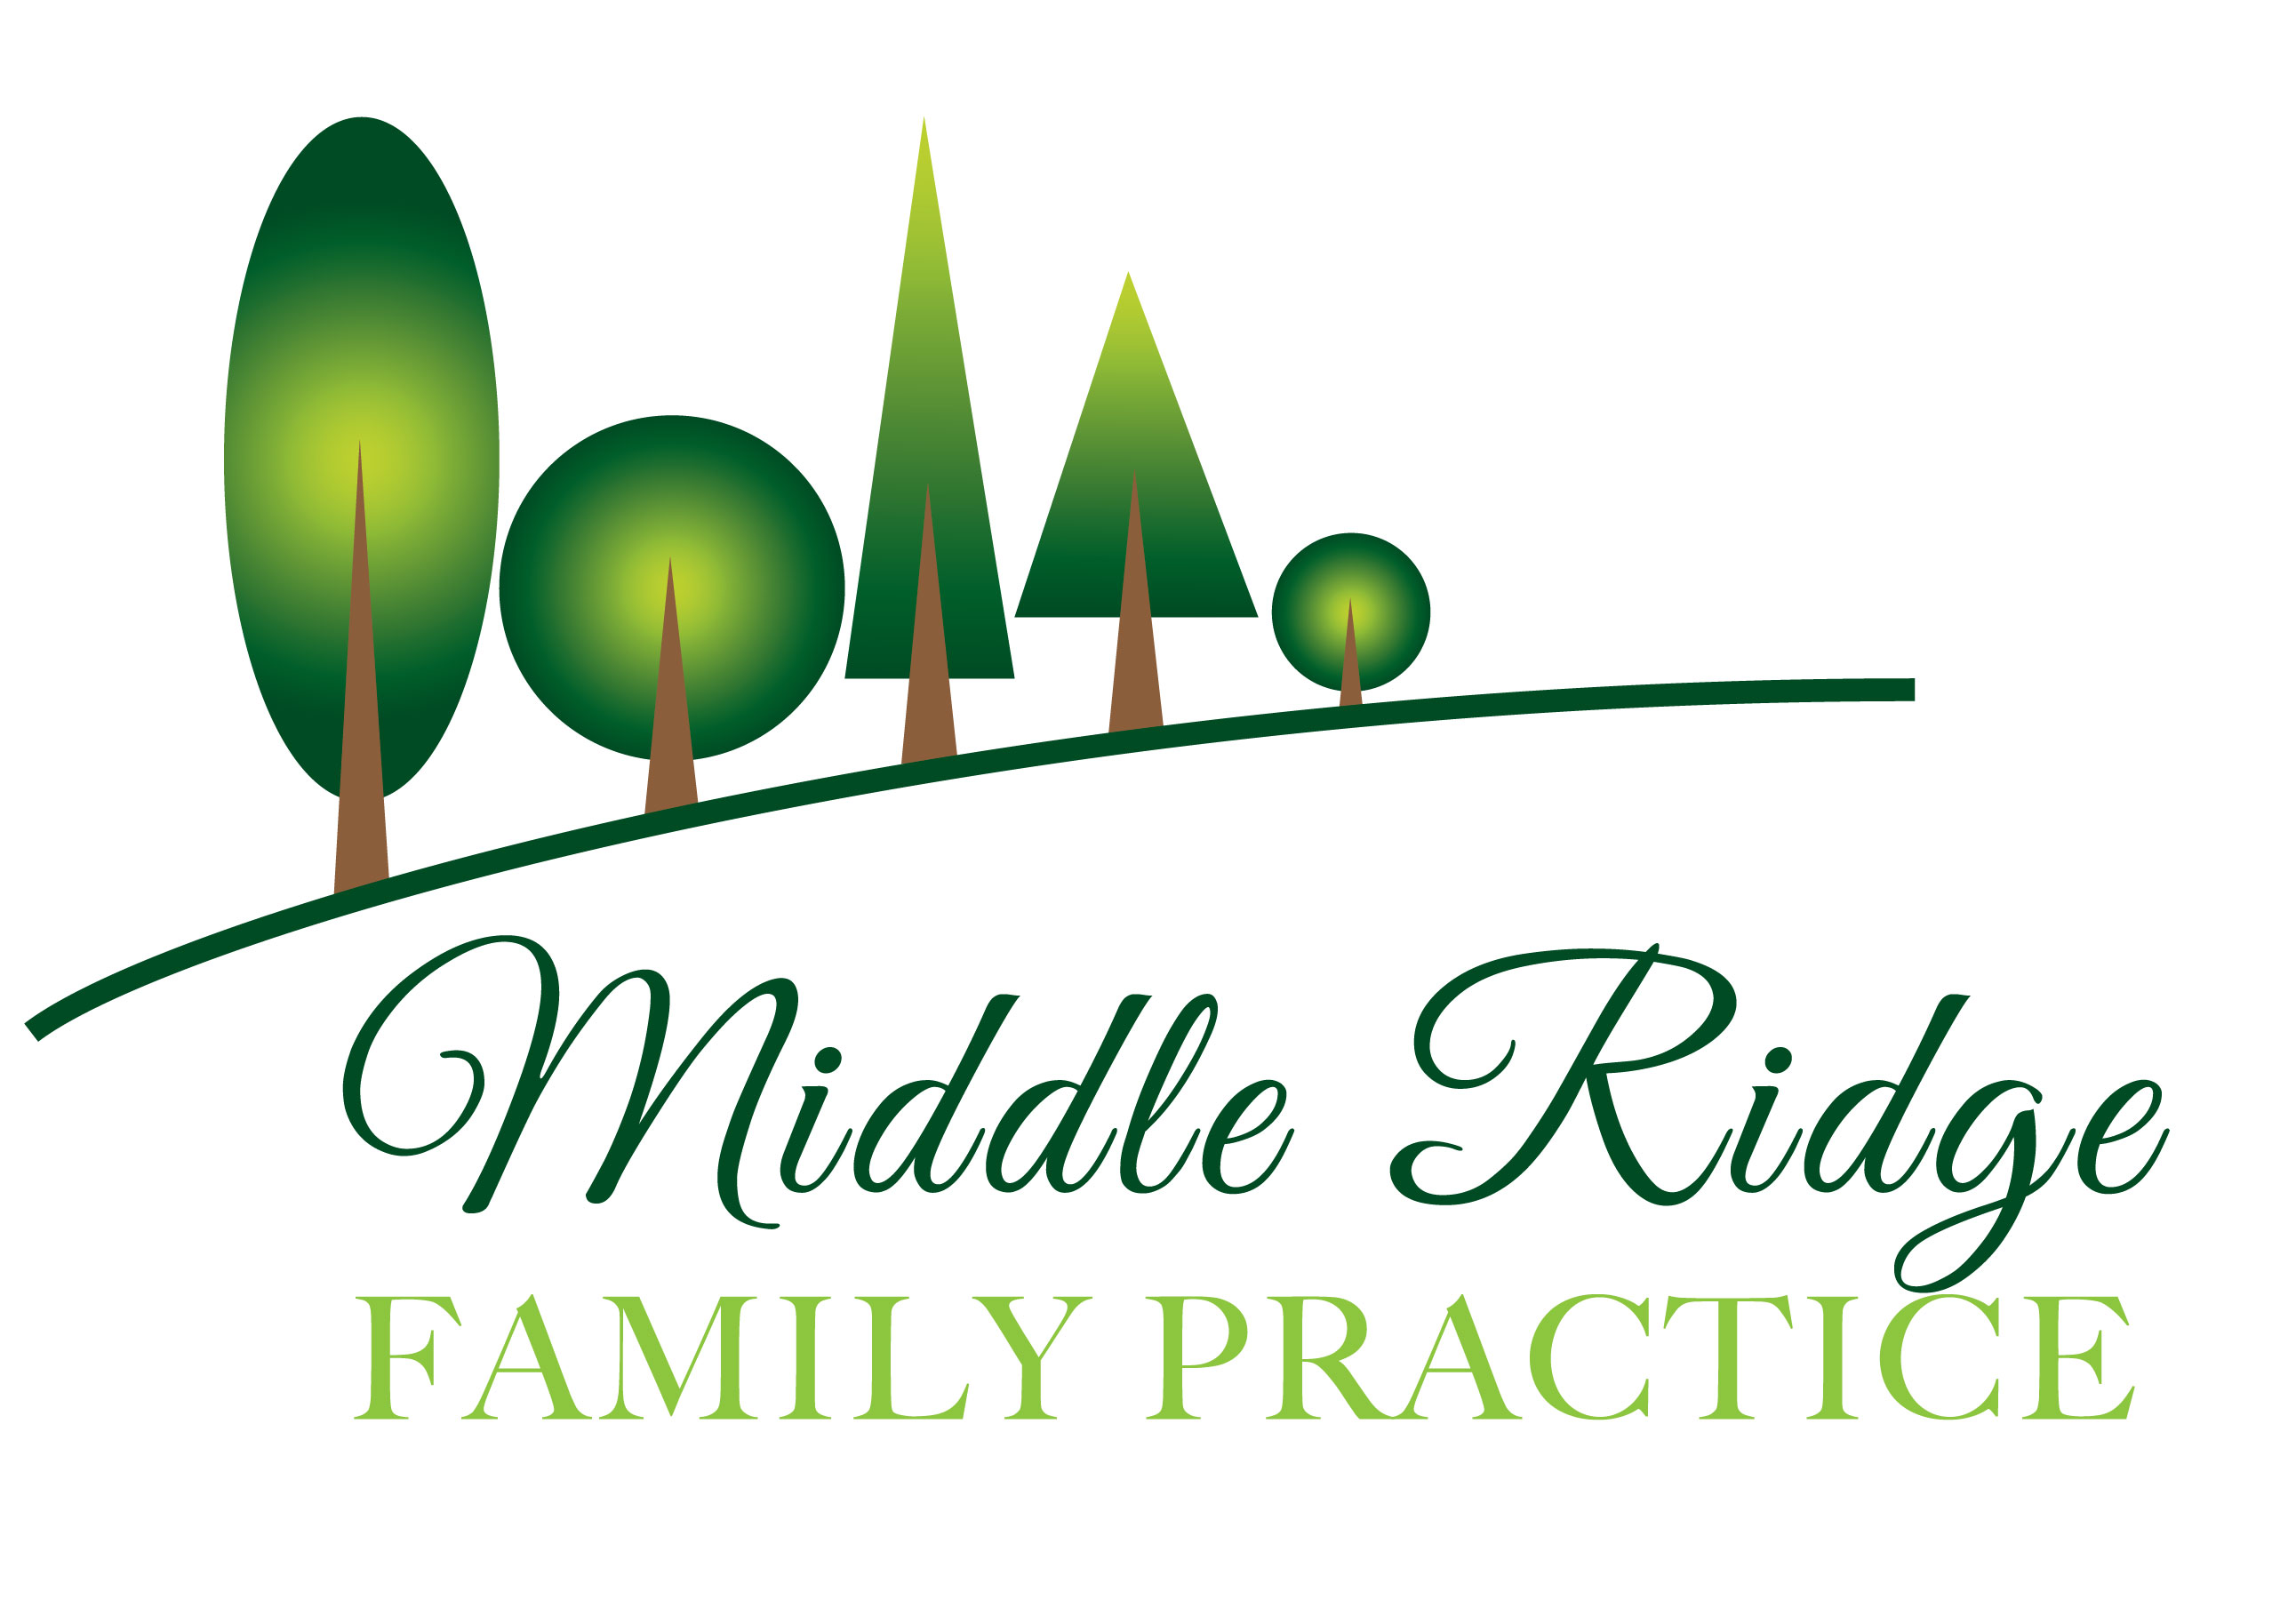 Middle Ridge Family Practice